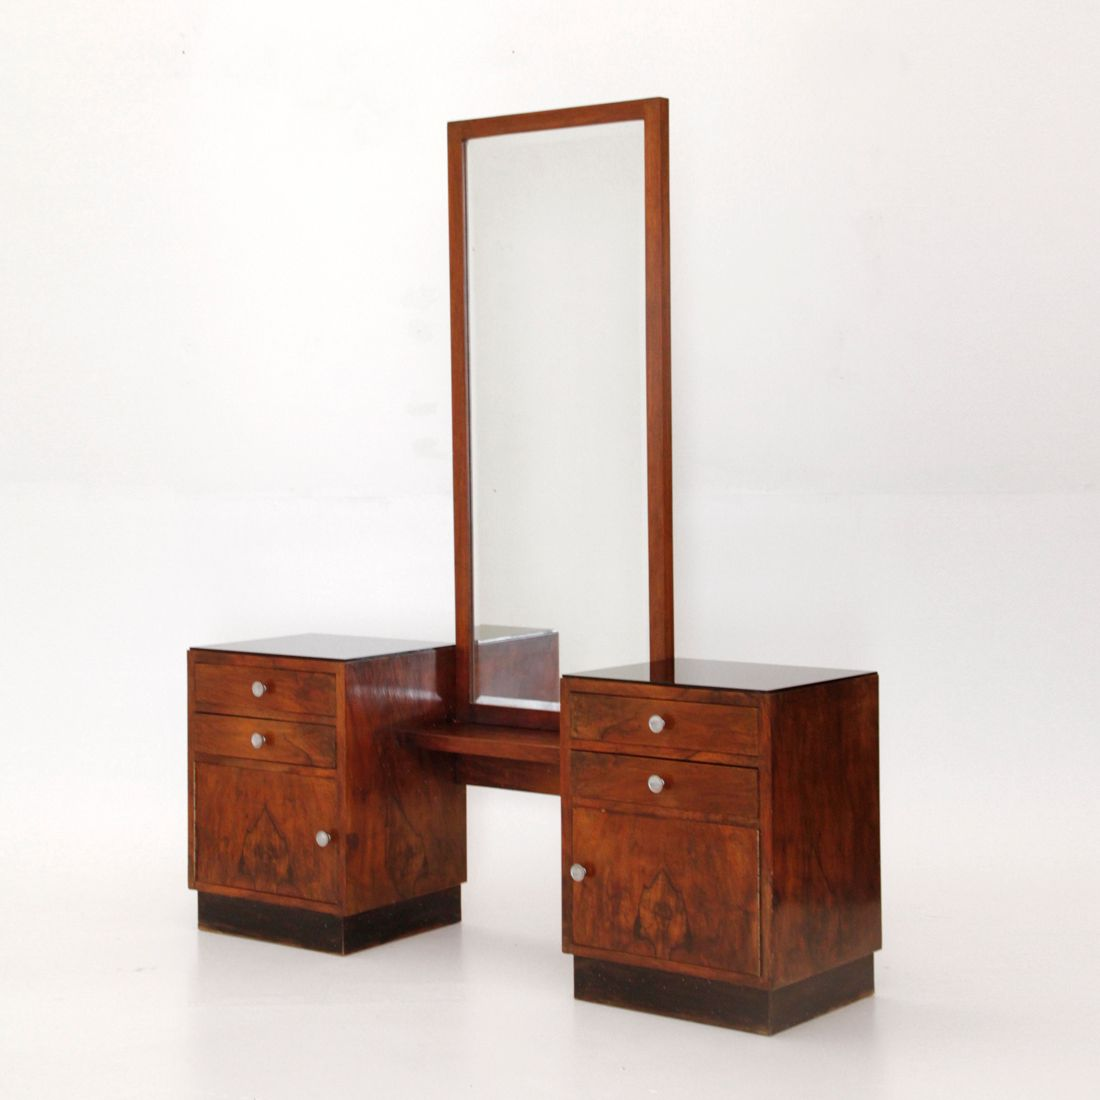 Dressing table and mirror 1950s for sale at pamono for Dressing table mirror